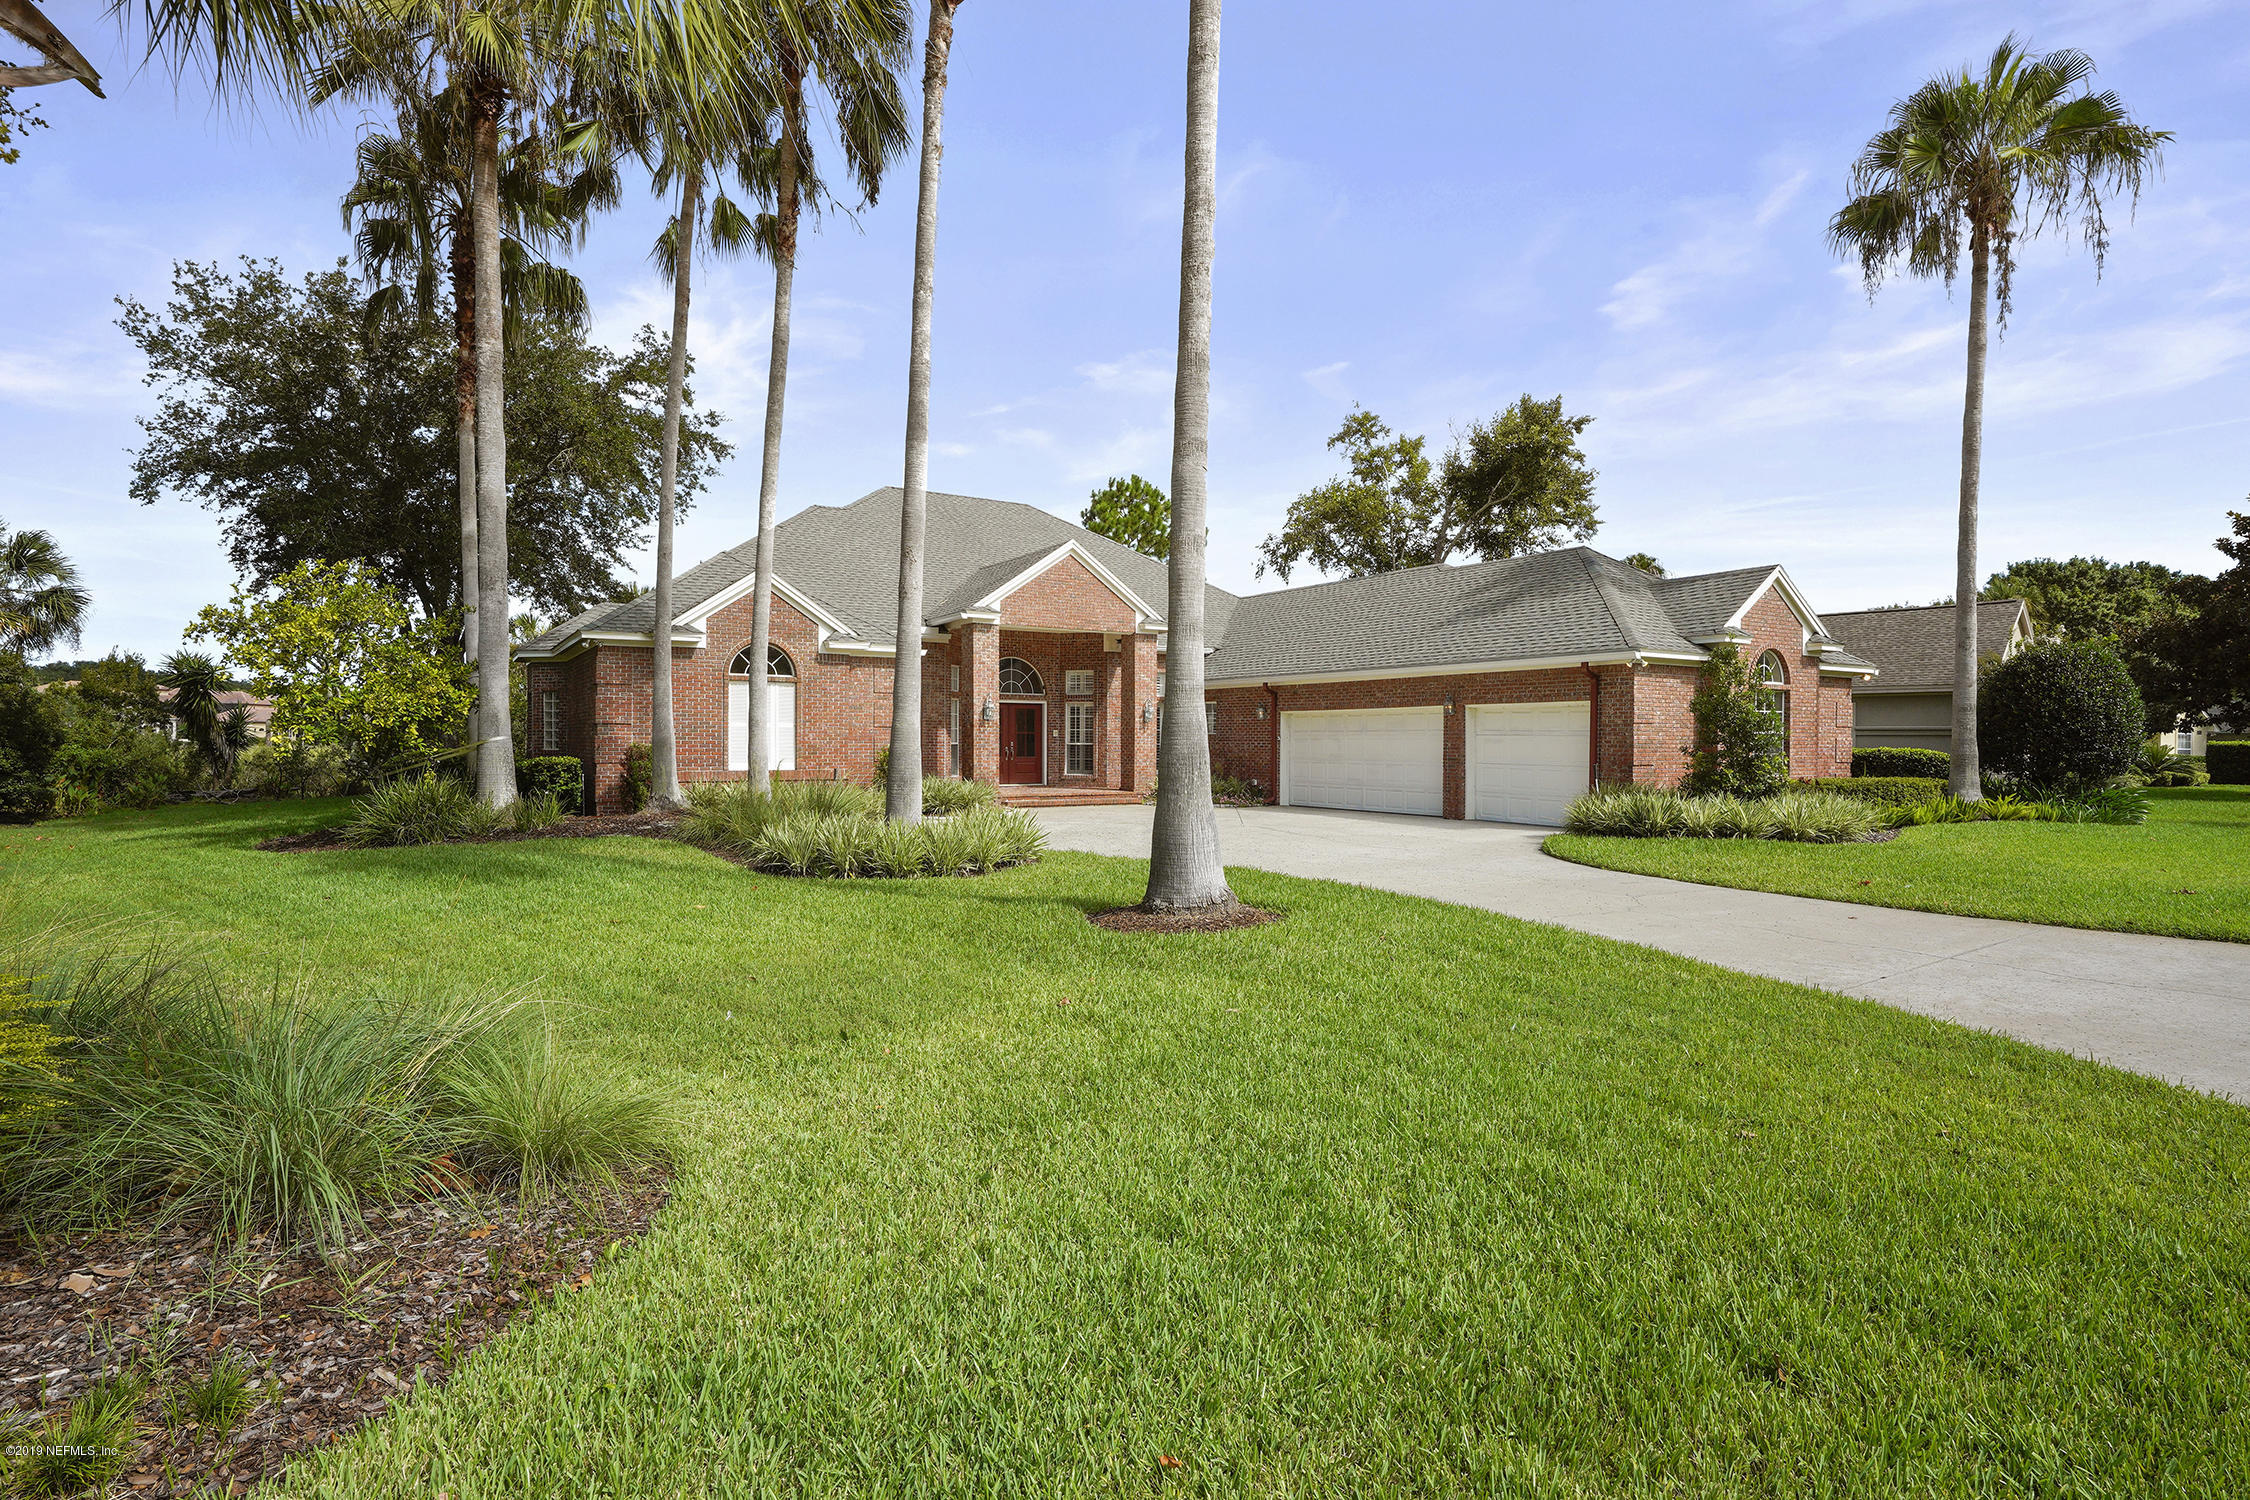 24492 HARBOUR VIEW, PONTE VEDRA BEACH, FLORIDA 32082, 4 Bedrooms Bedrooms, ,3 BathroomsBathrooms,Residential - single family,For sale,HARBOUR VIEW,1011464